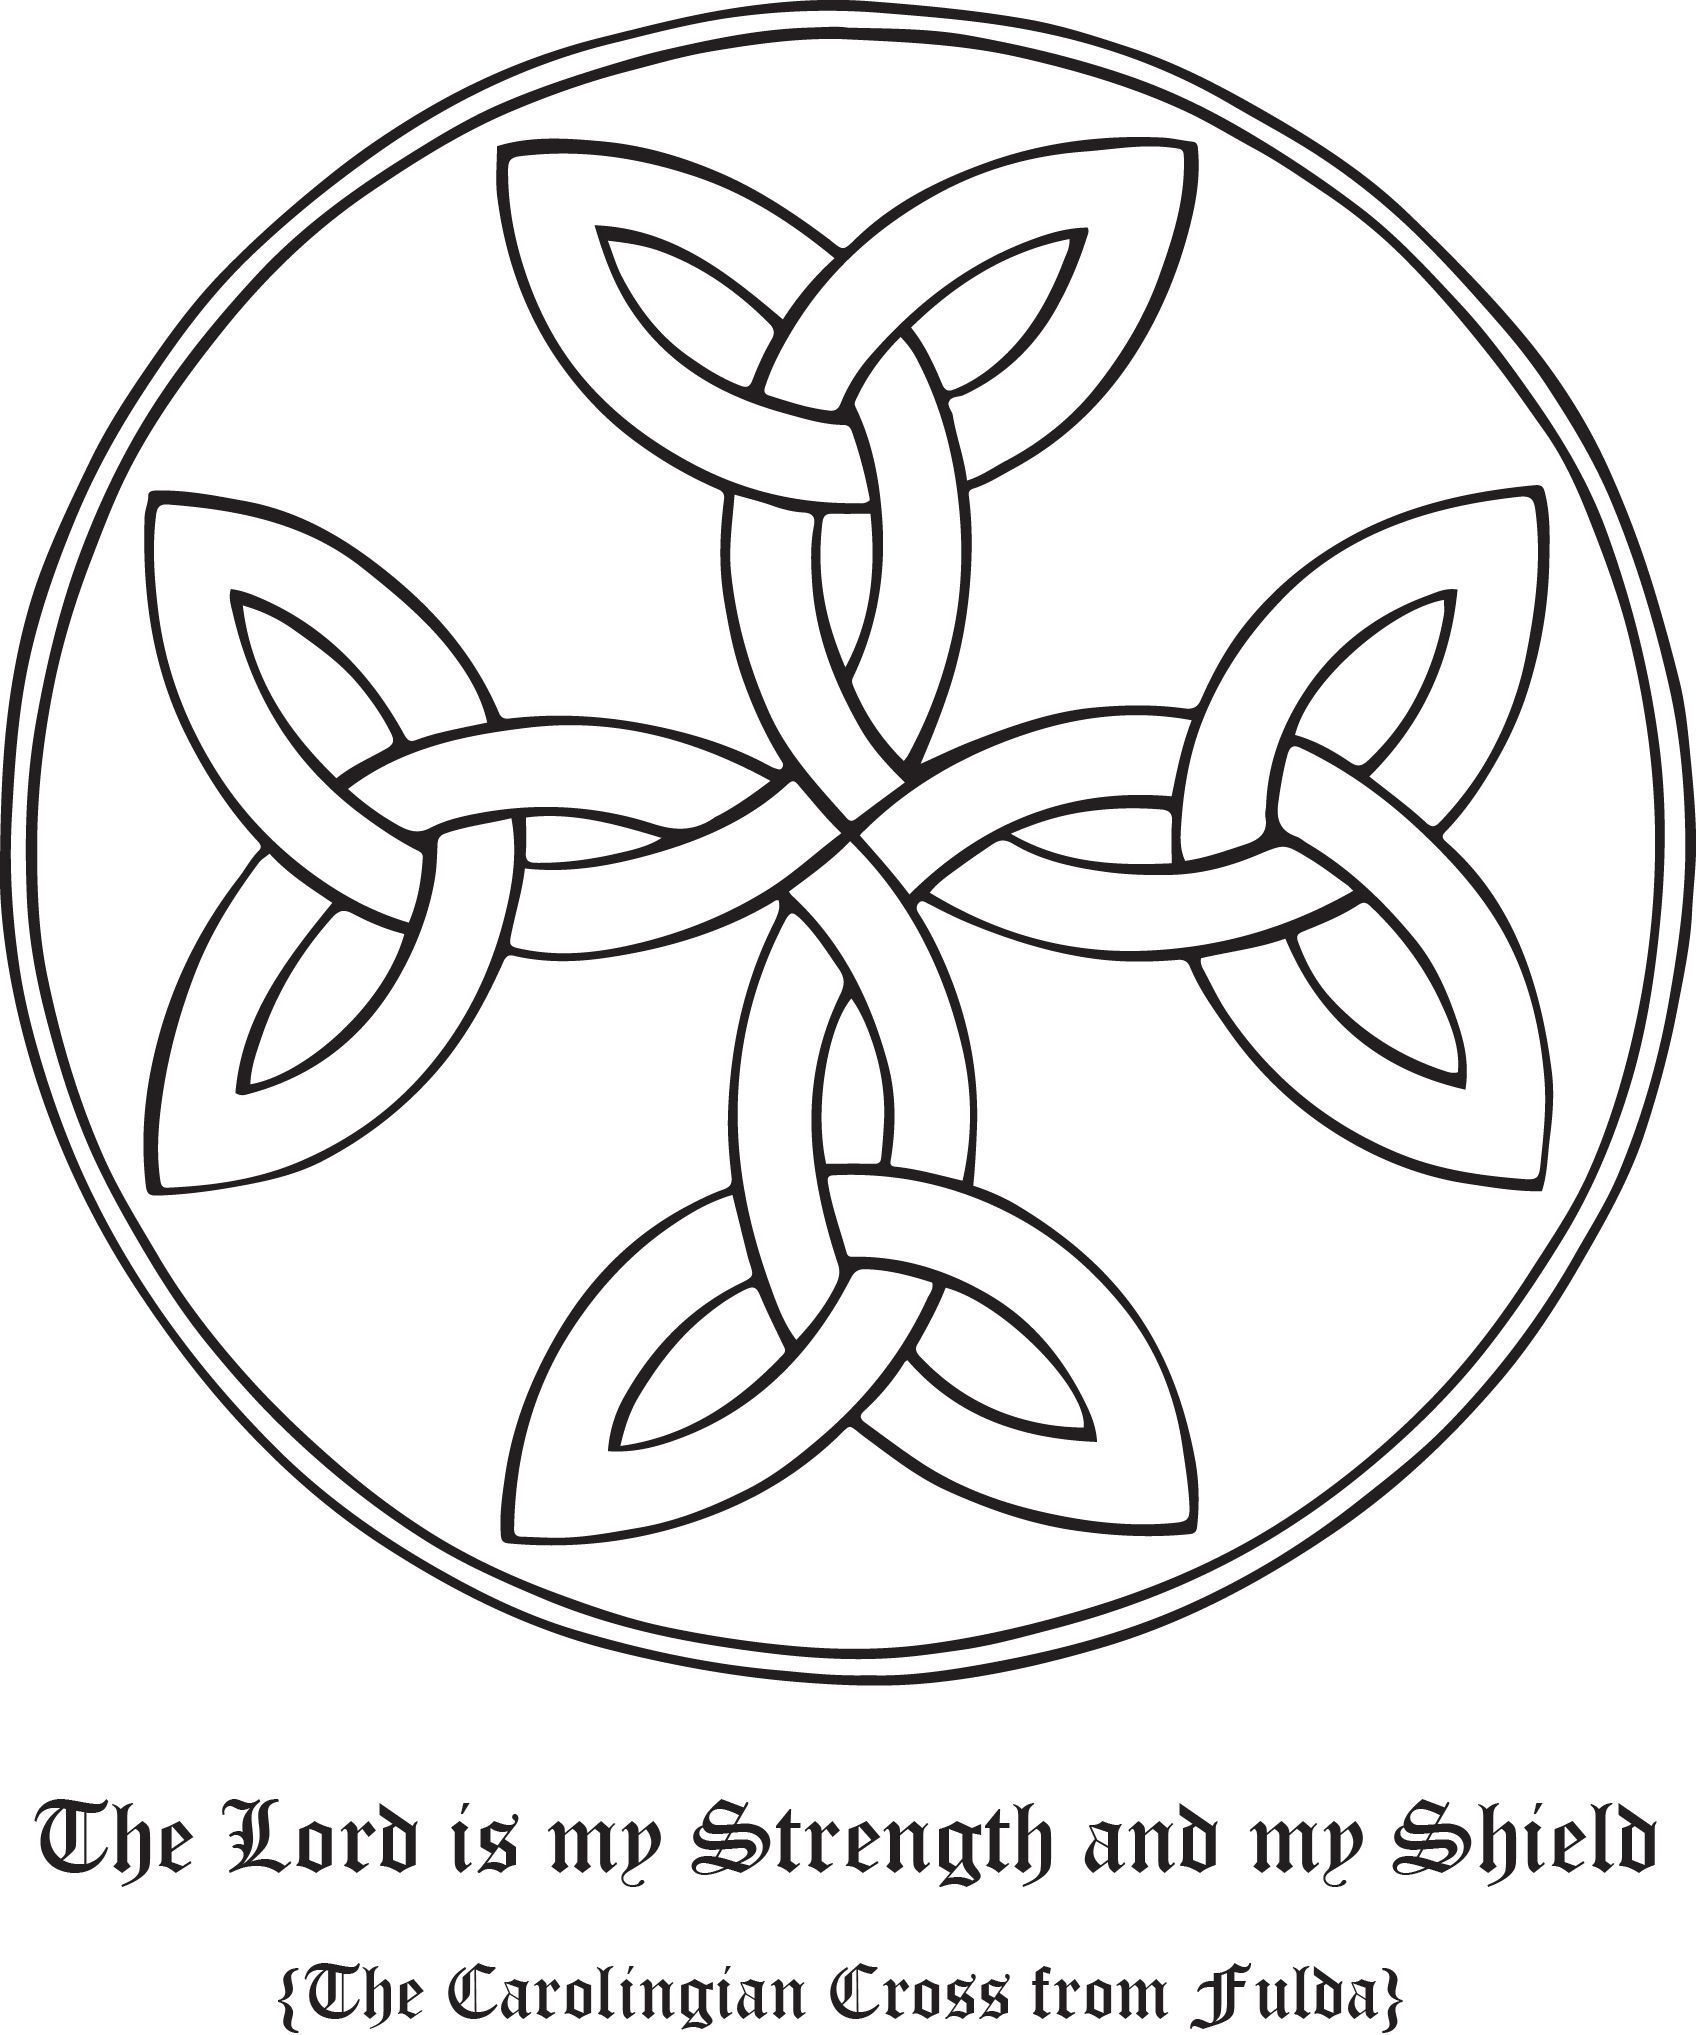 Rudolf koch christian symbol 100 carolingian cross symbols show your support for your faith with rudolf kochs christian symbols these gorgeous and eternally biocorpaavc Gallery